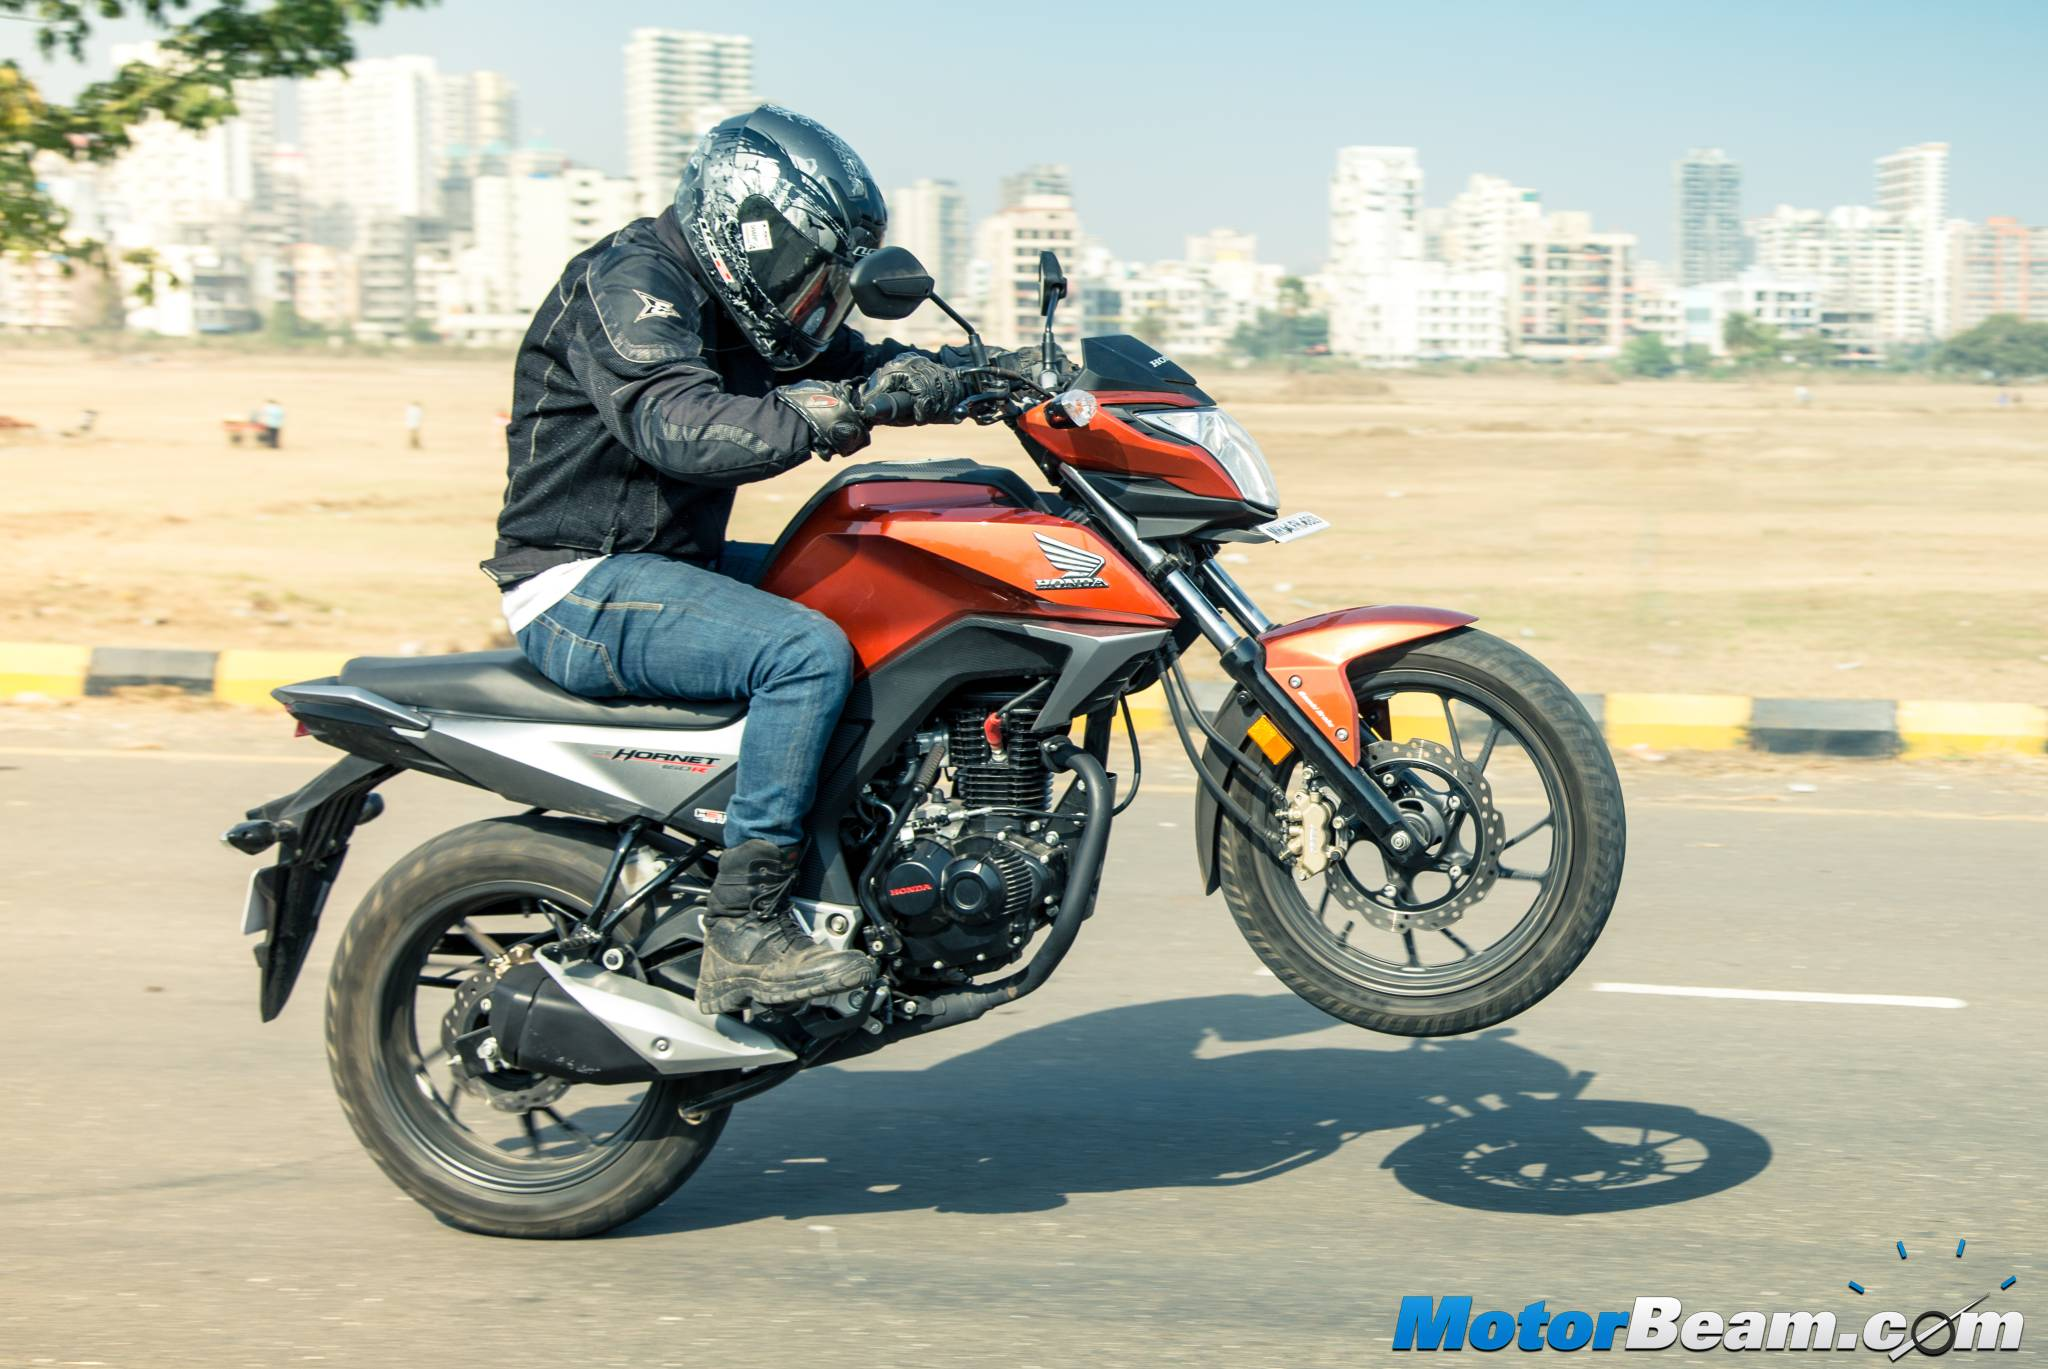 Honda CB Hornet 160R Review